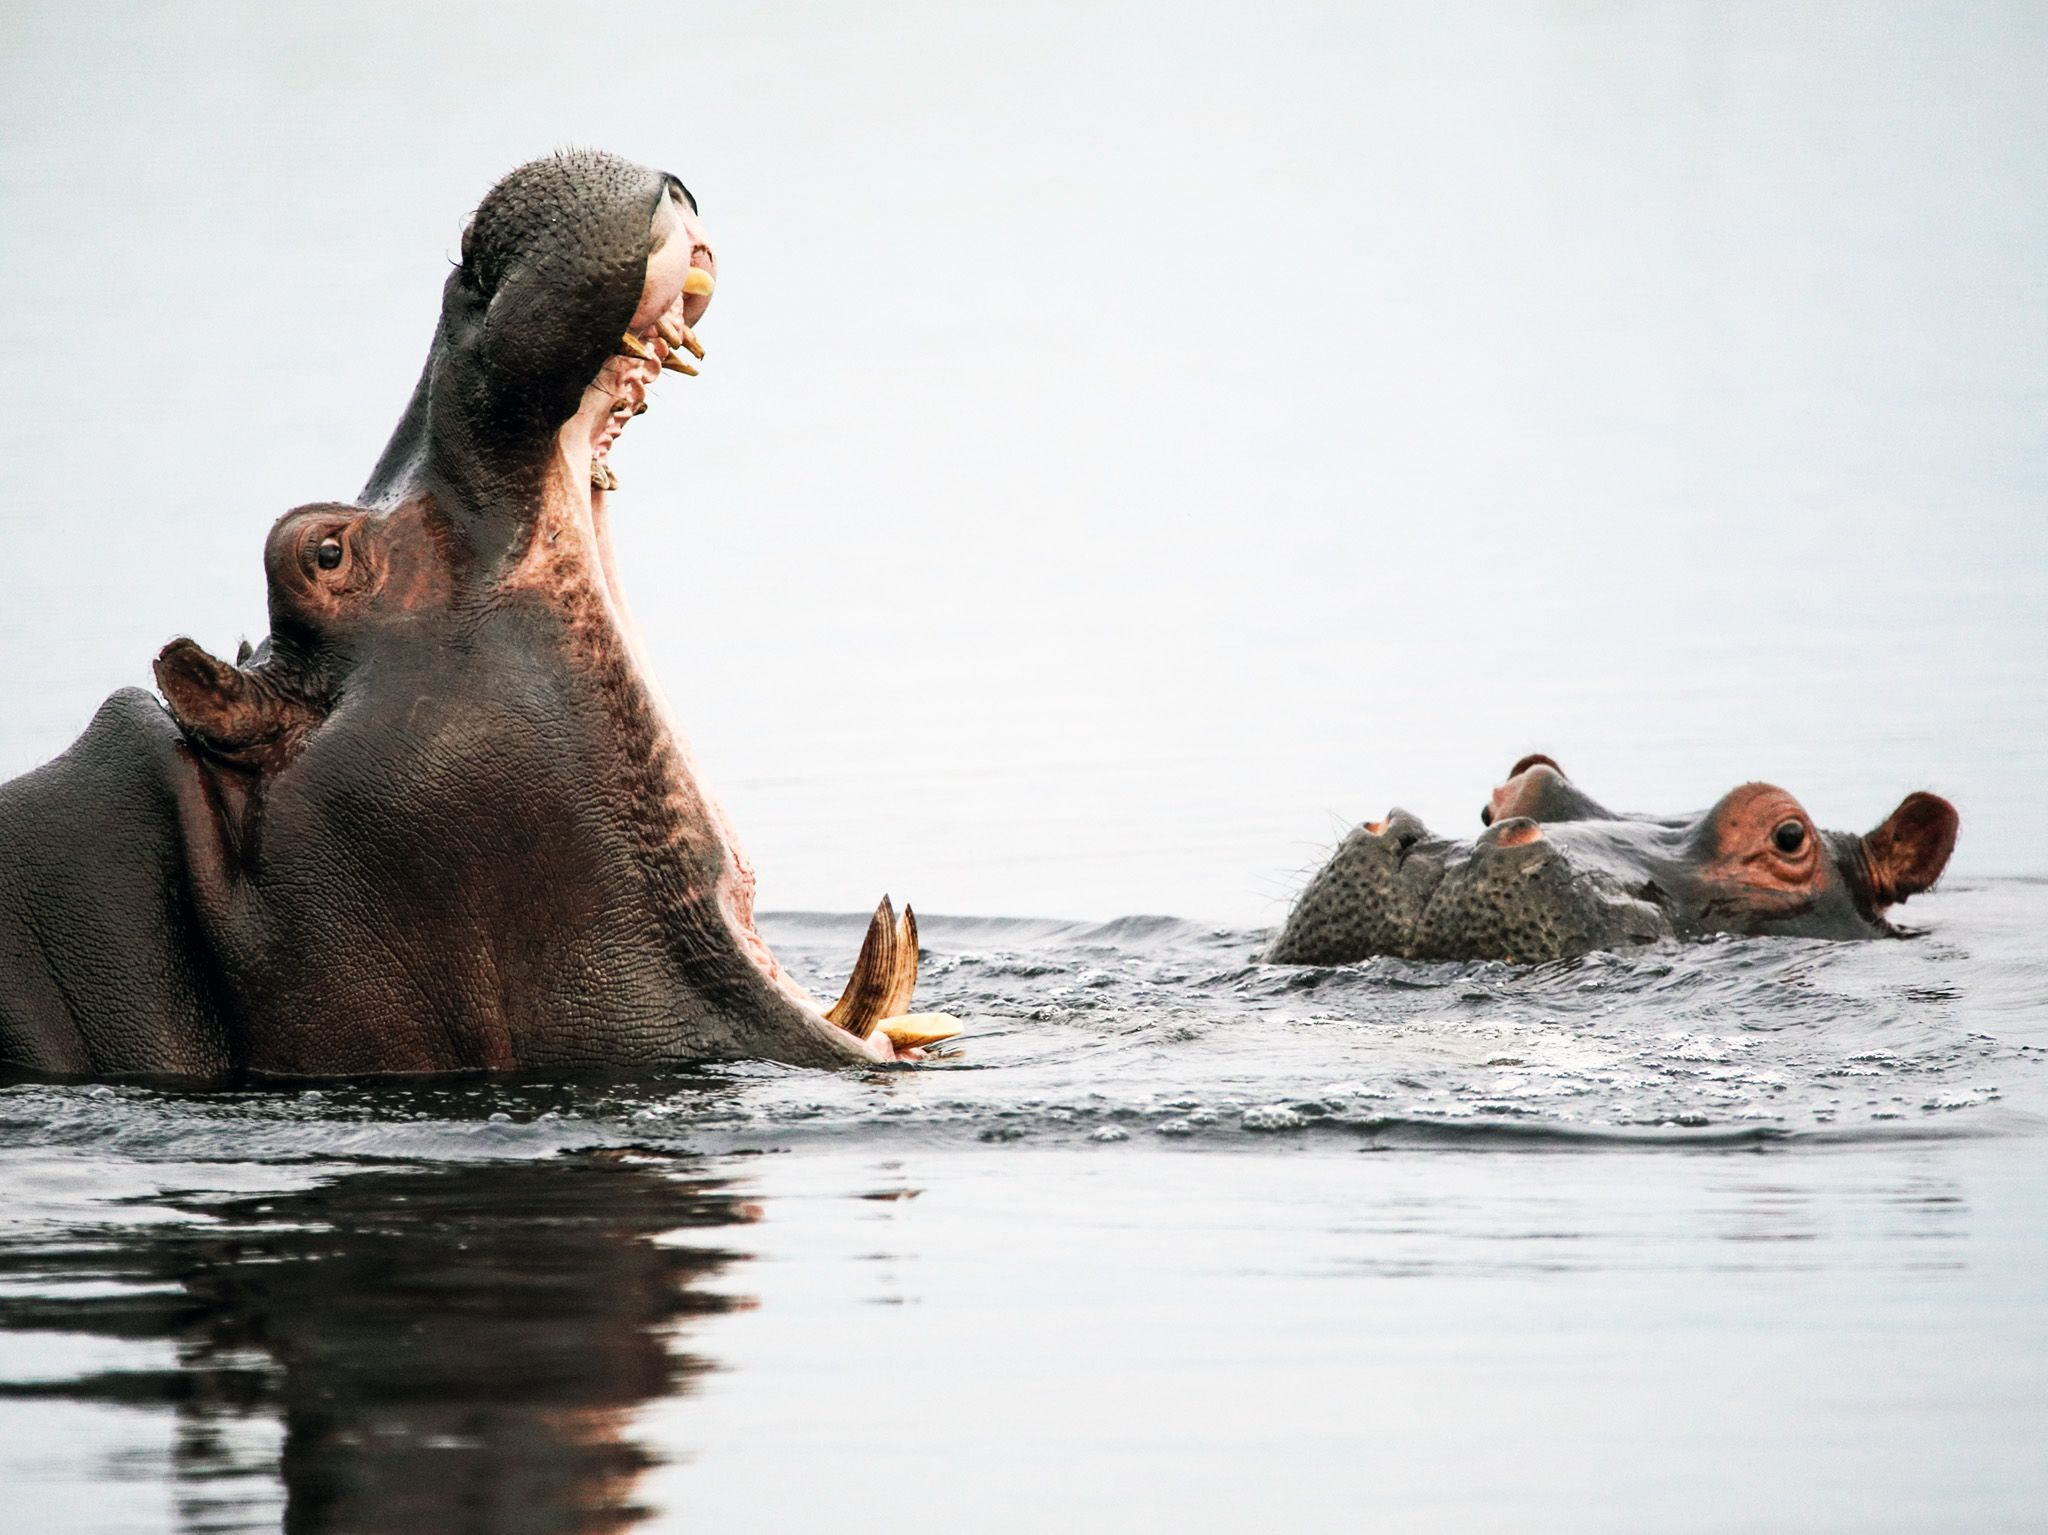 Botswana:  A male hippo attempts to impress a female as it opens its mouth wide showing off it... [Foto del giorno - novembre 2018]